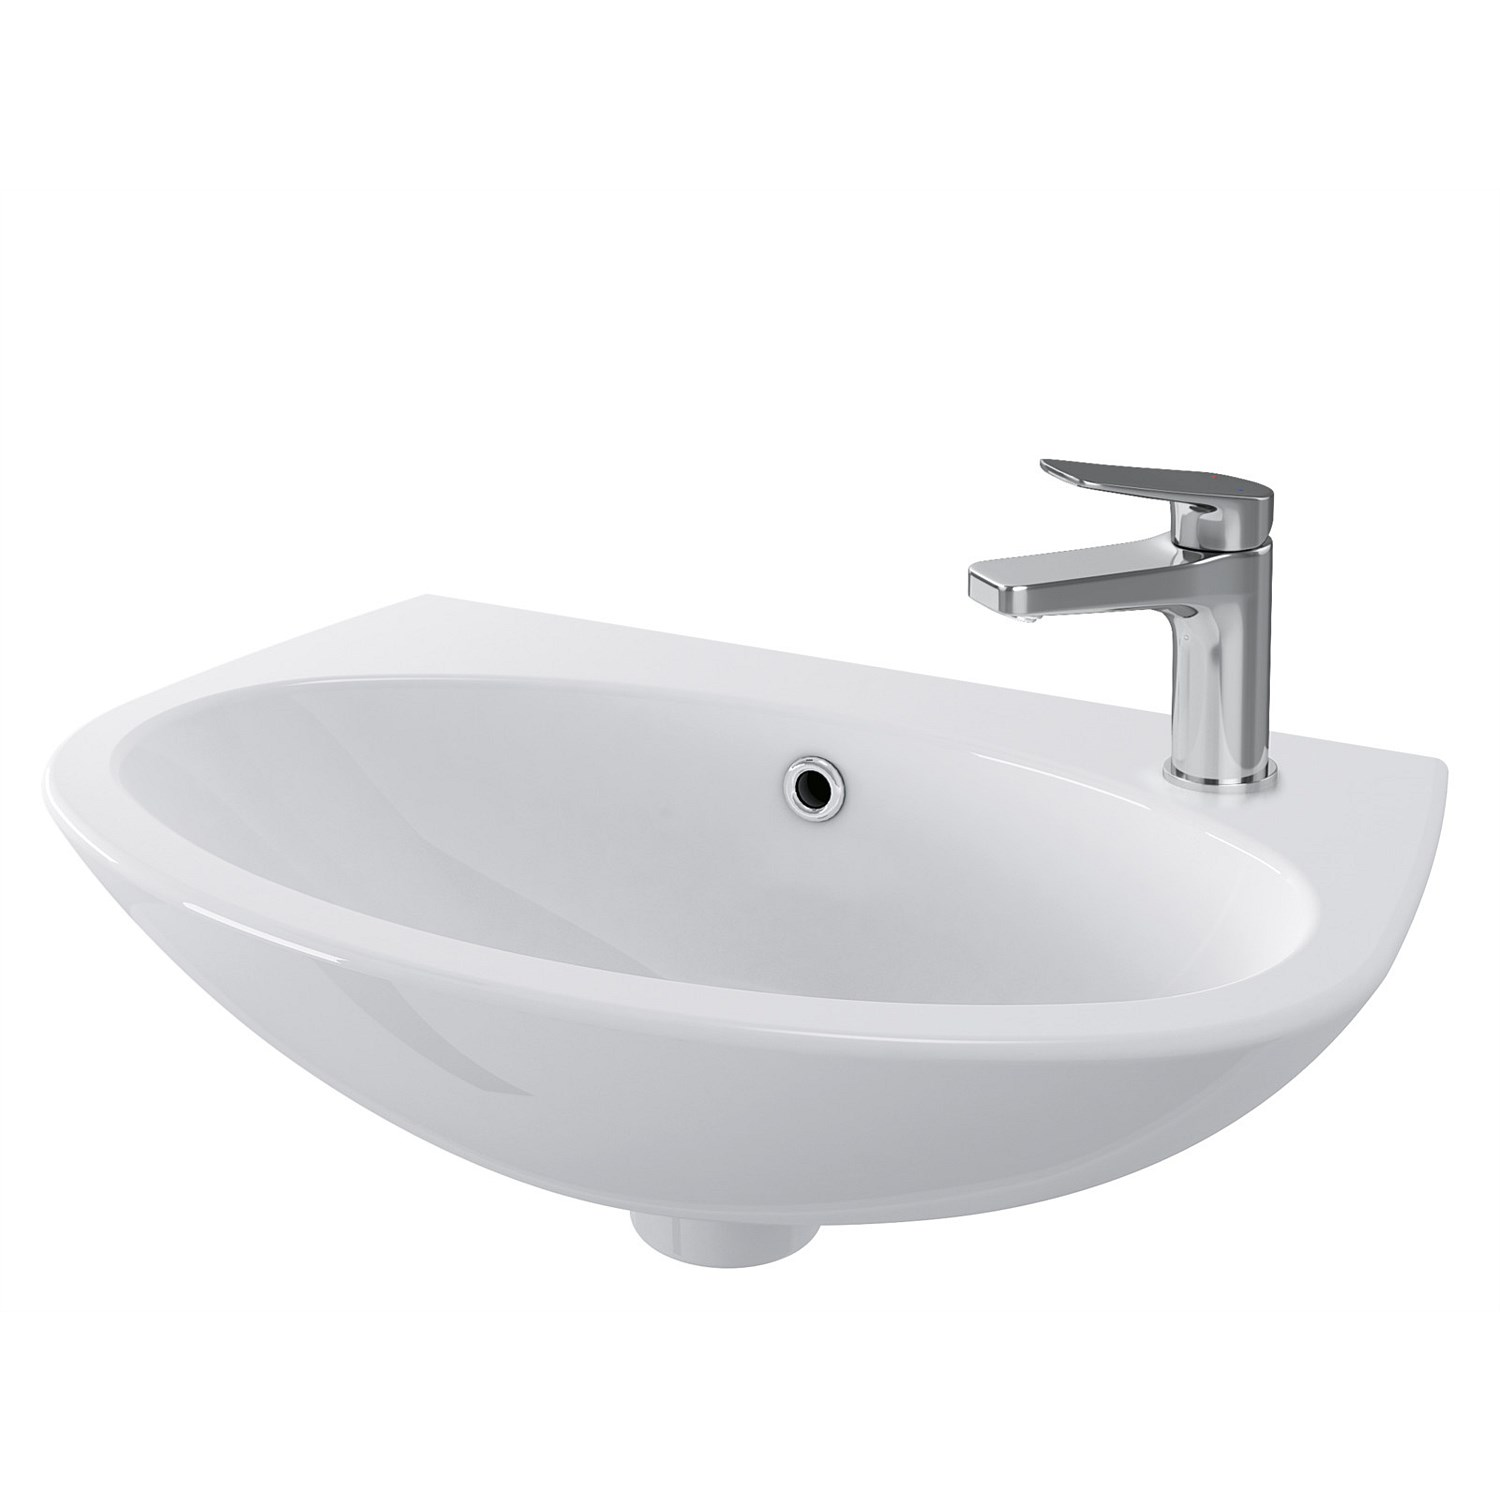 Wall-Hung - Toto Sintra II 450mm Ensuite Basin